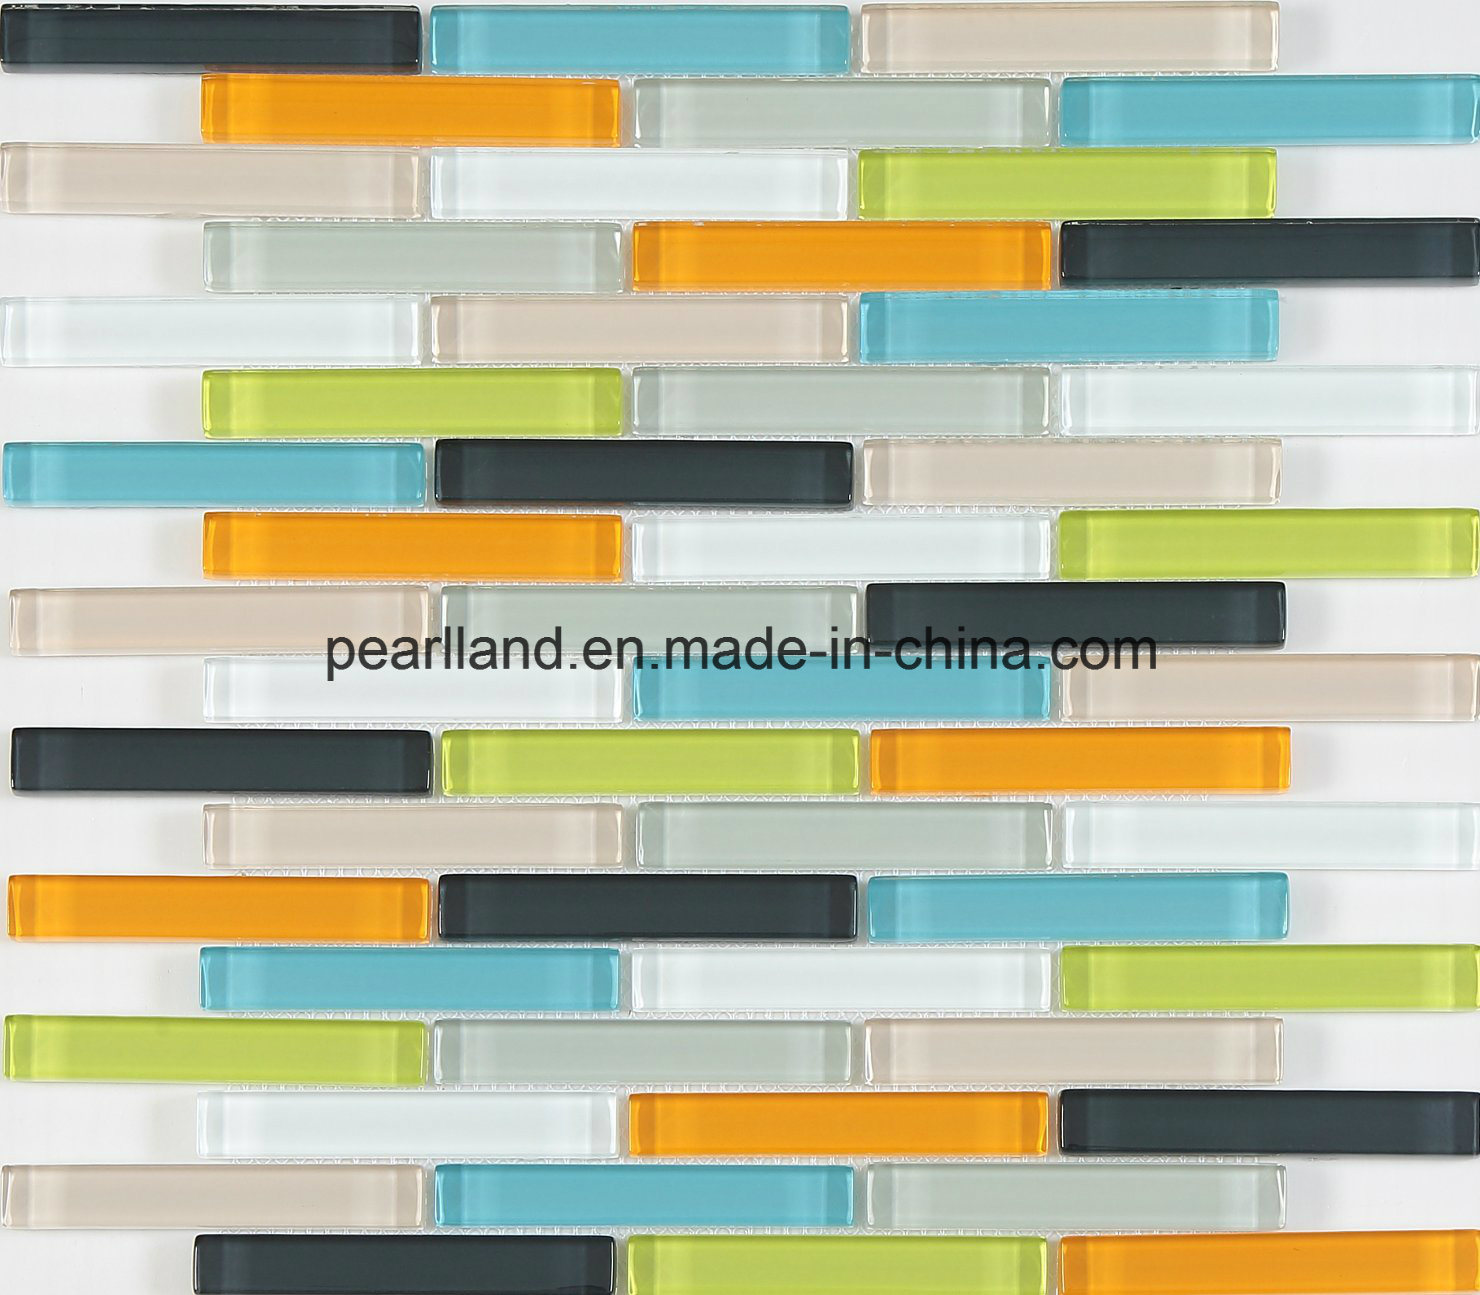 Glass Mosaic Tiles Decoration Kitchen Backsplash Bathroom Wall Tiles